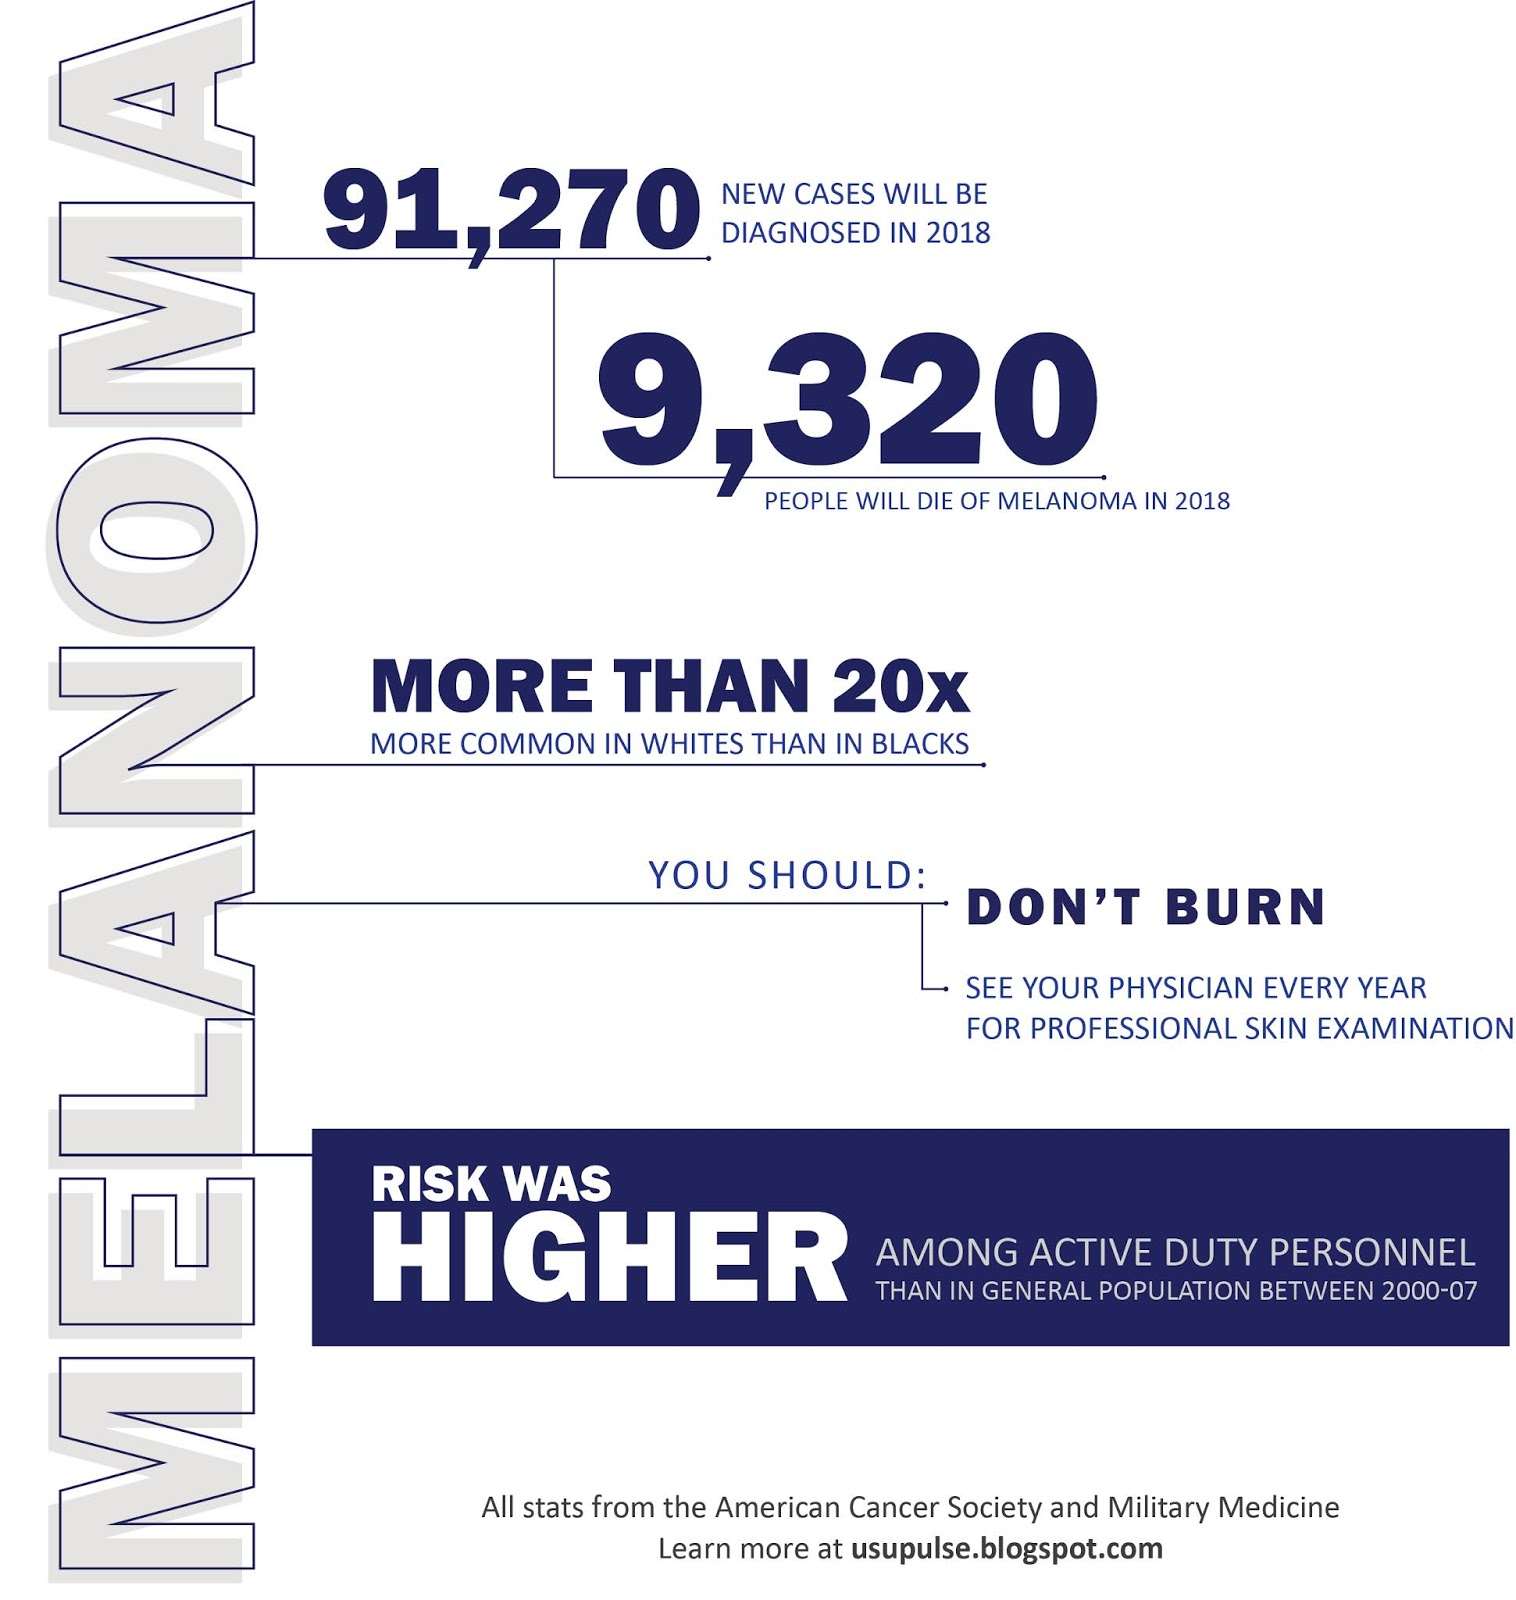 Infographic that says: melanoma; 91,270 new cases will be diagnosed in 2018; 9,320 people will die of melanoma in 2018; more than 20x more common in whites than in blacks; you should: don't burn, see your physician every year for professional skin examination. Risk was higher among active duty personnel than in general population between 2000-07. All stats from the American Cancer Society and Military Medicine